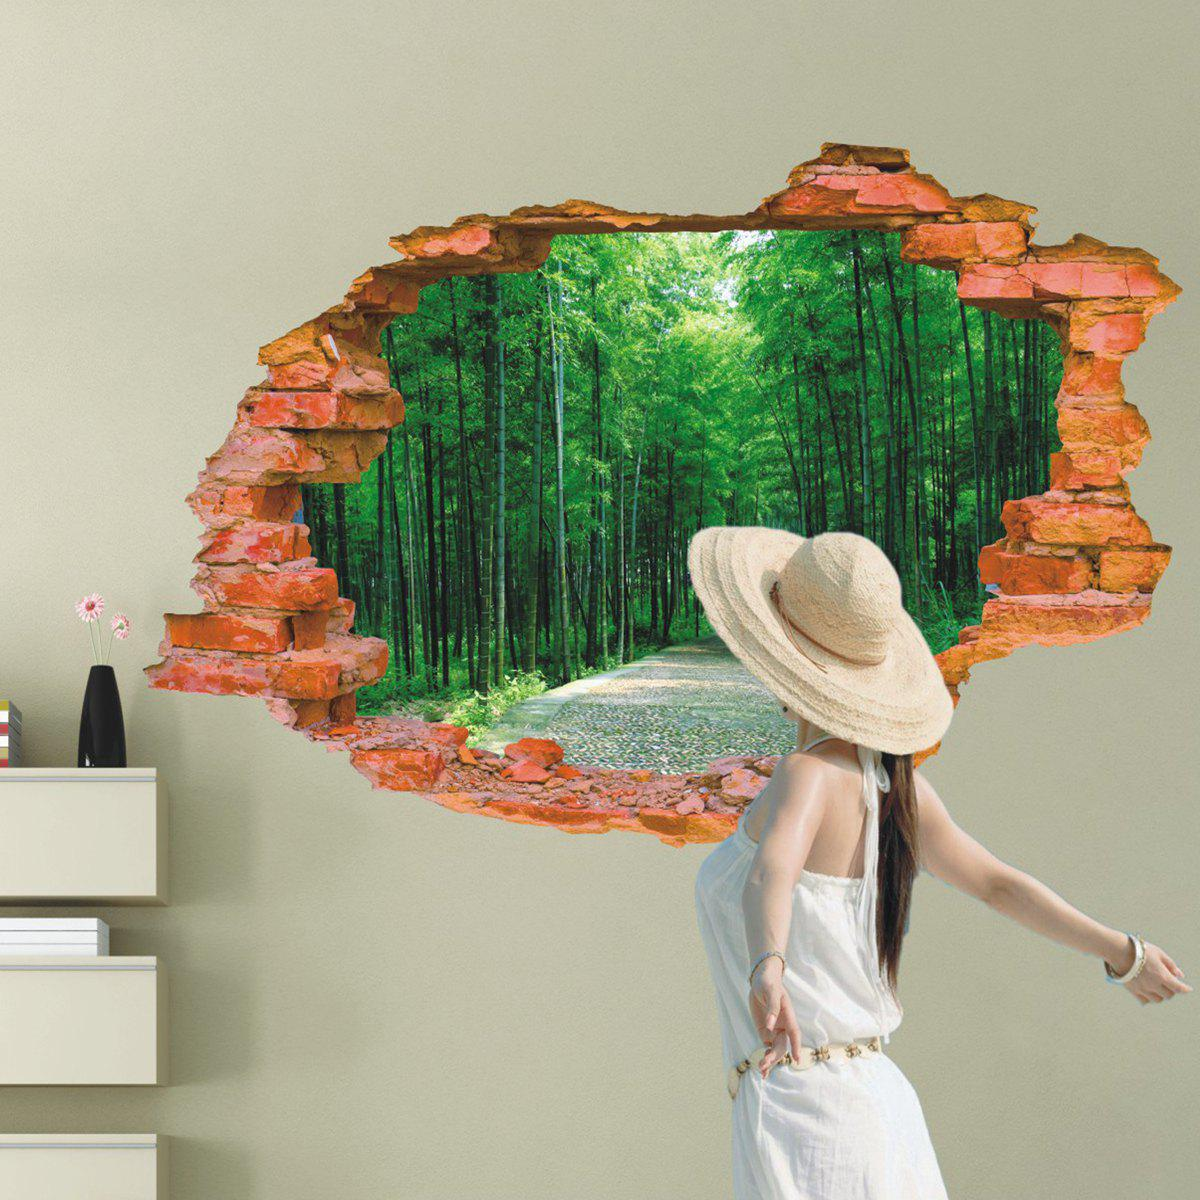 Avenue path style creative 3d wall sticker removable wallpaper avenue path style creative 3d wall sticker removable wallpaper water resistant home art decals colorful amipublicfo Gallery